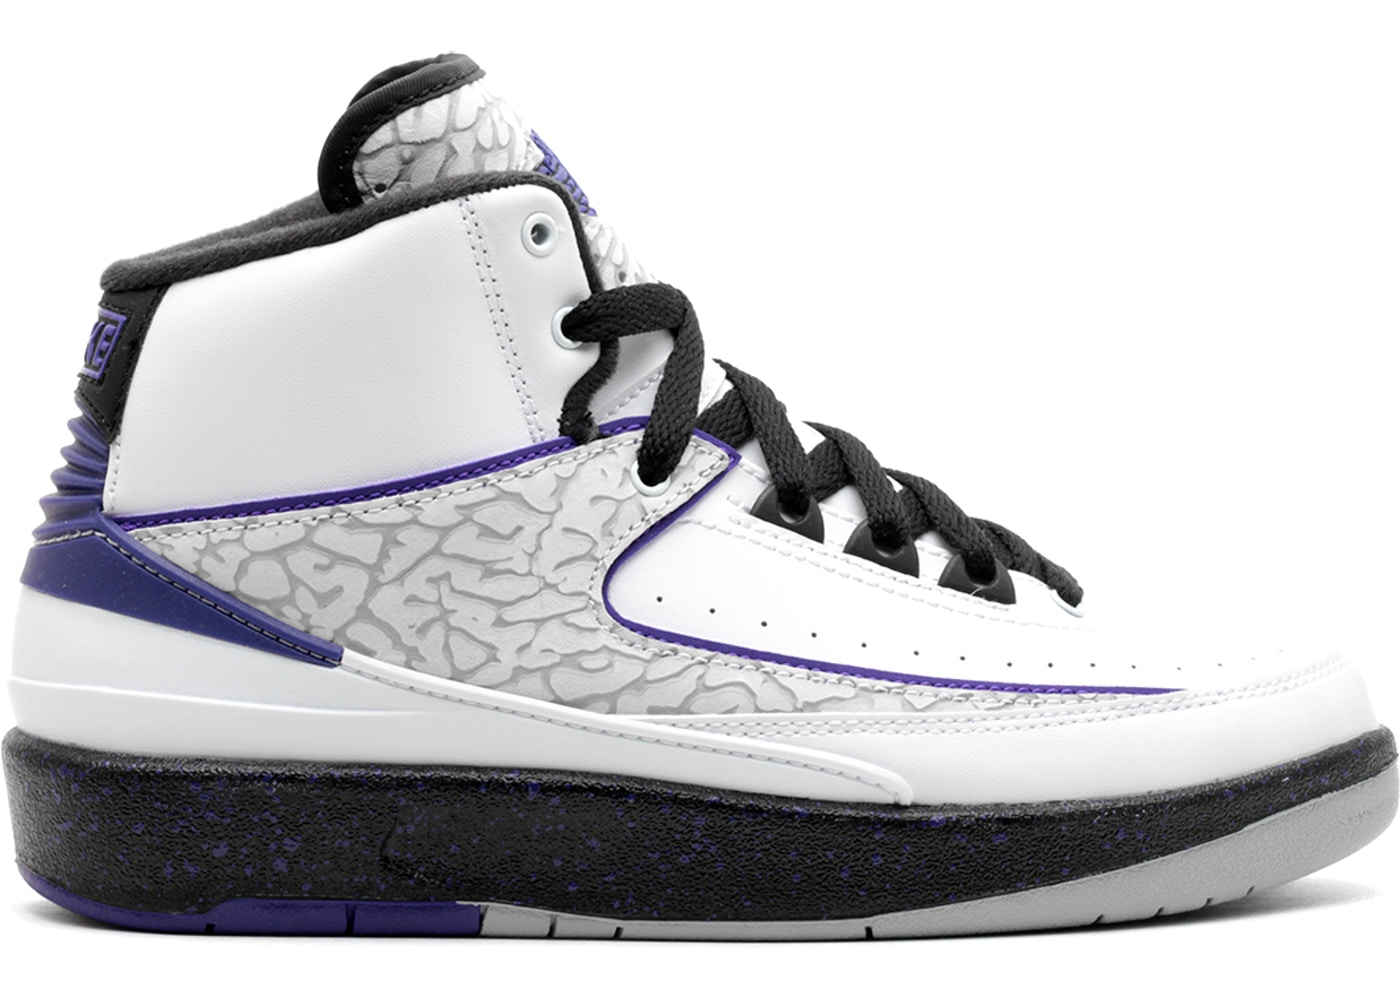 quality design 379dc 1a98a Jordan 2 Retro Dark Concord (GS)